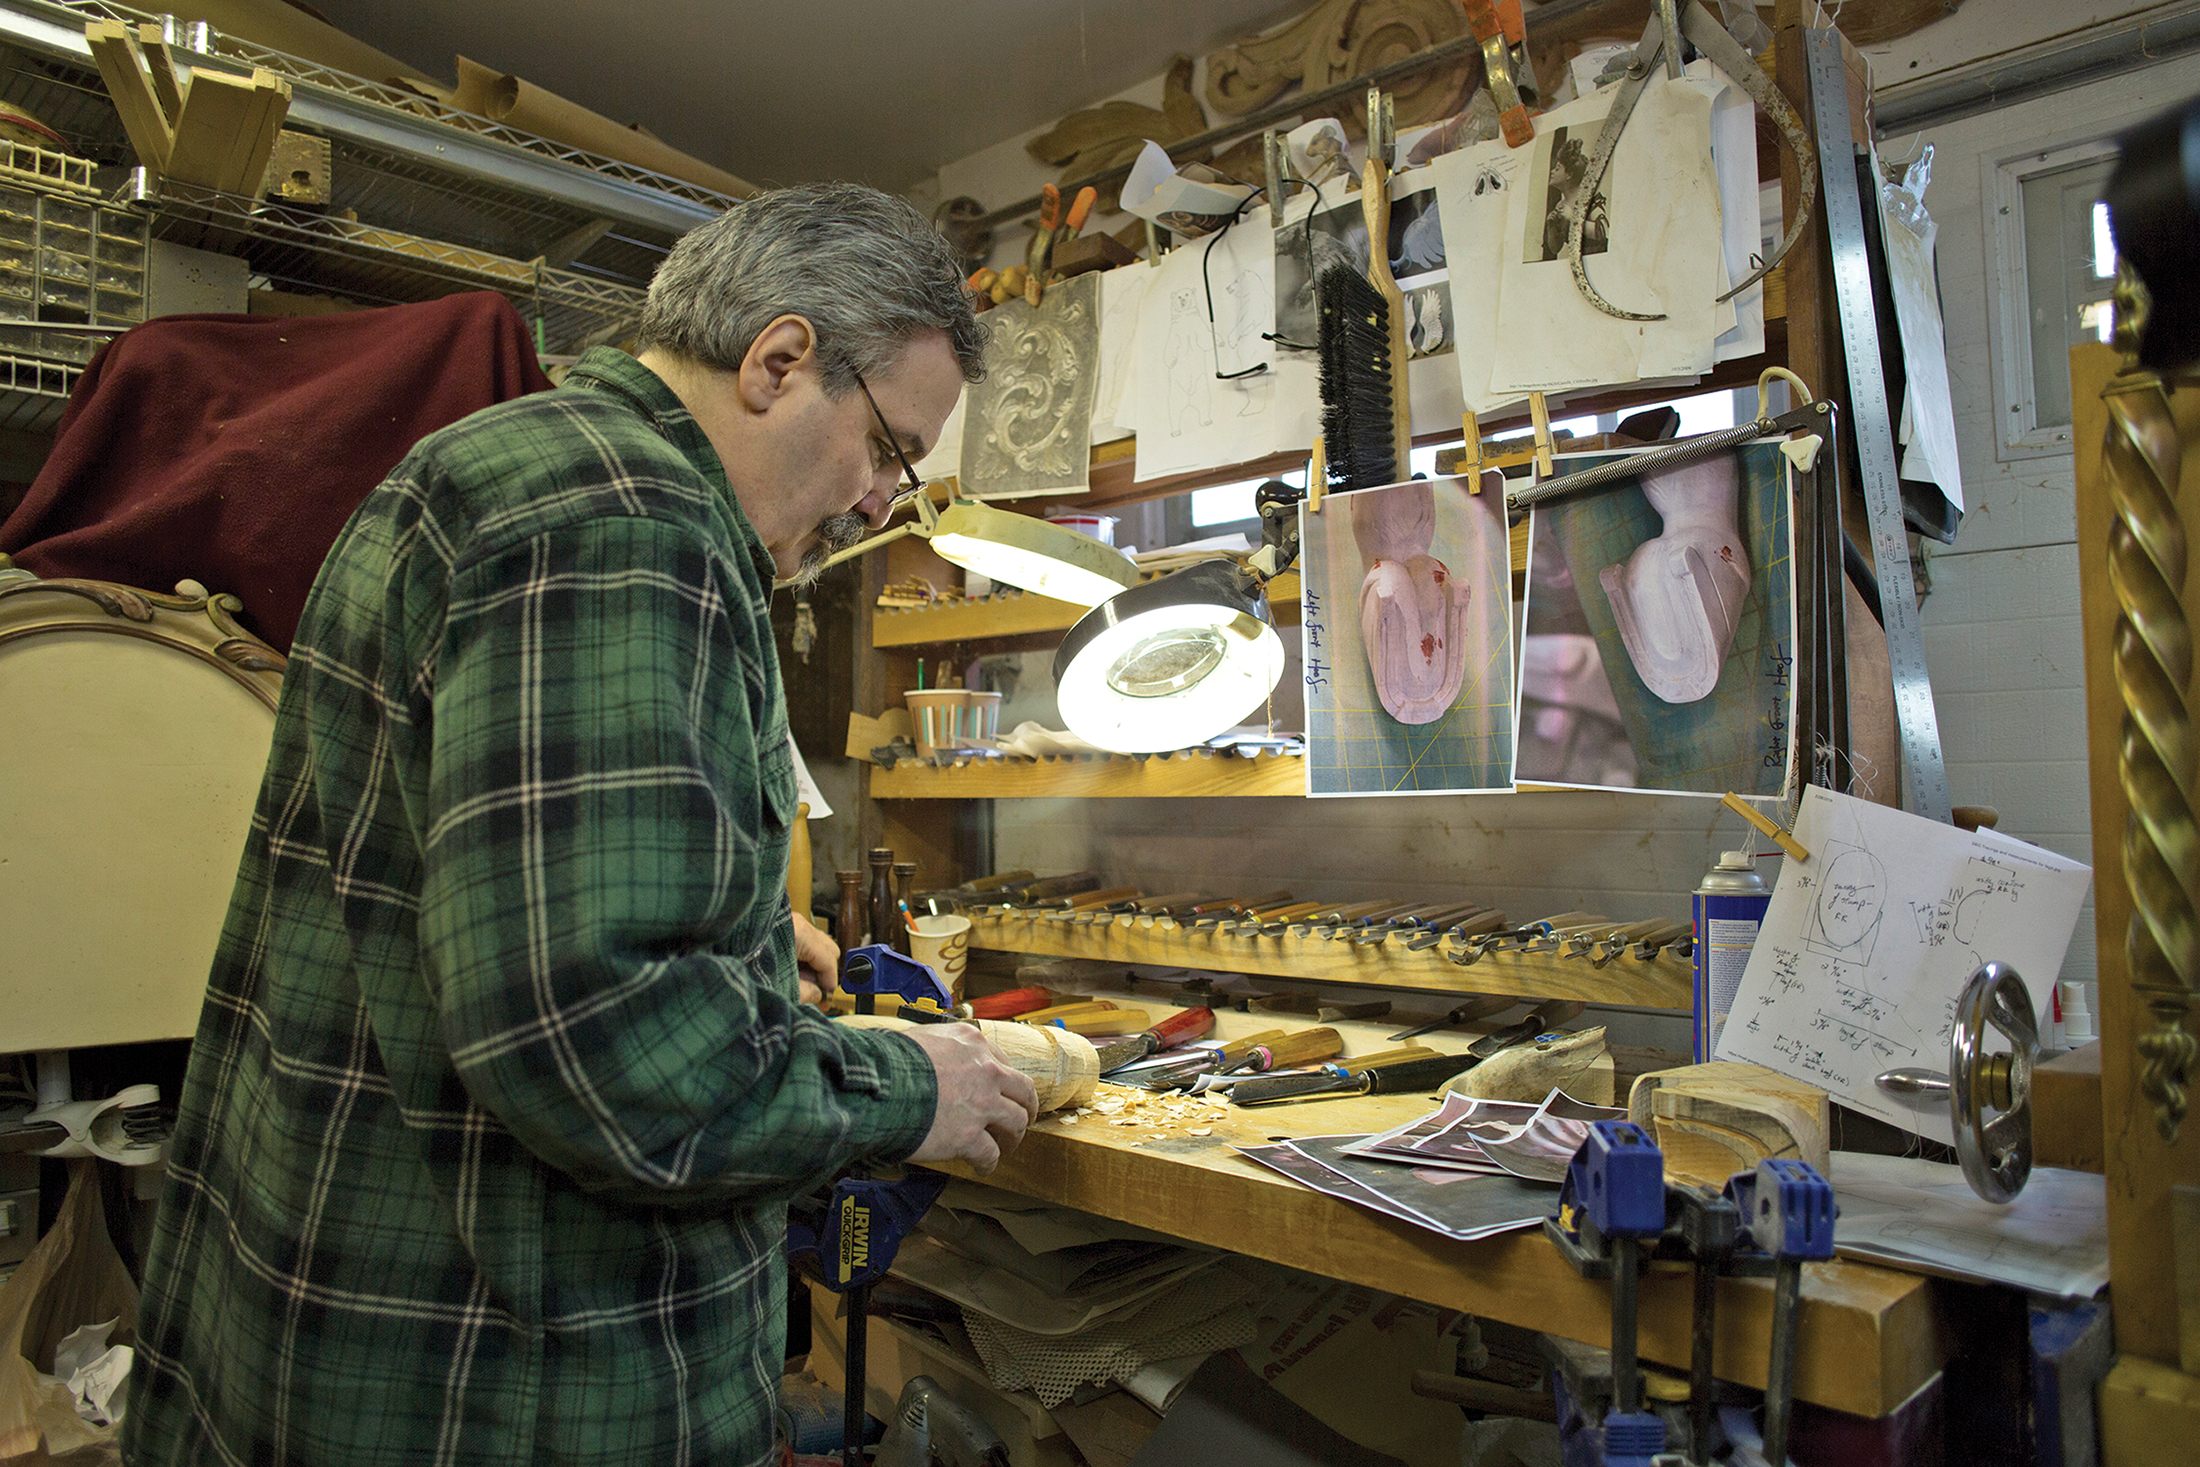 In his workshop, he carves a new leg and hoof for an antique carousel horse. (Photo by Melissa Rocha)